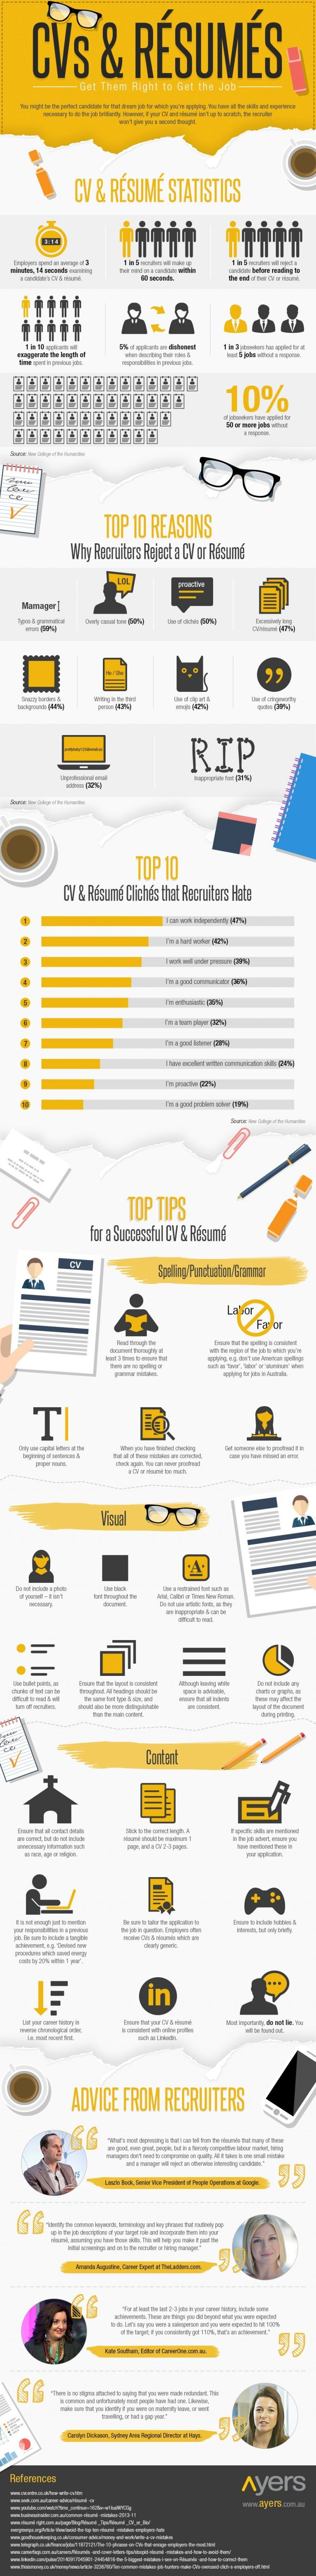 cvs resumes get them right to get the job infographic e cvs resumes get them right to get the job infographic e learning infographics